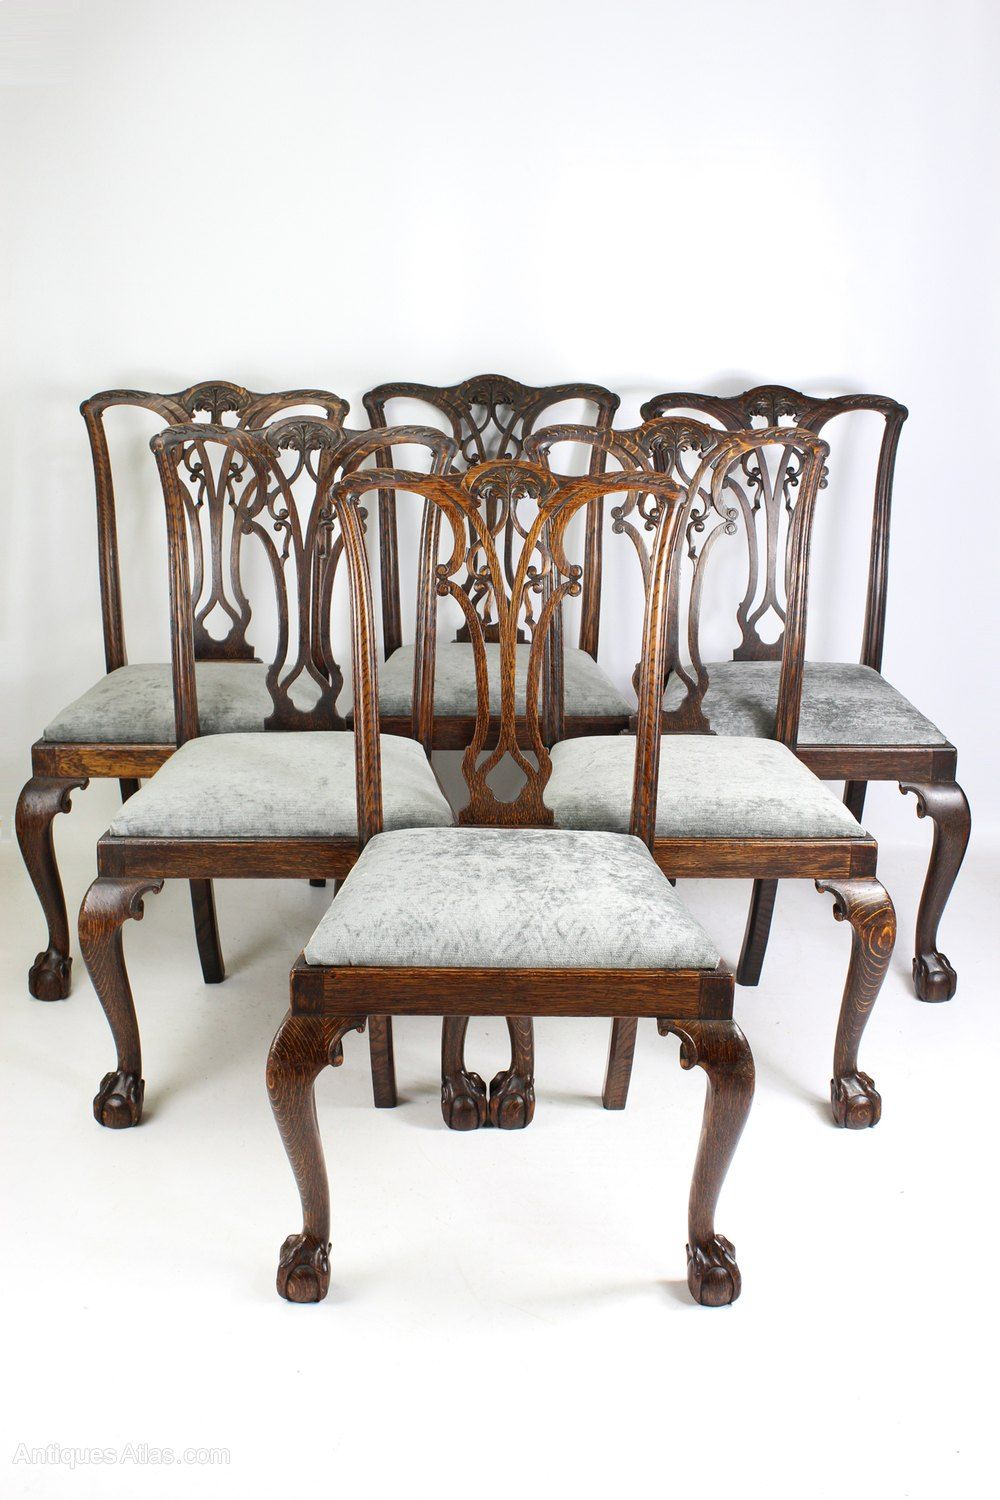 Pleasant Set 6 Antique Edwardian Oak Chippendale Chairs Antiques Ocoug Best Dining Table And Chair Ideas Images Ocougorg